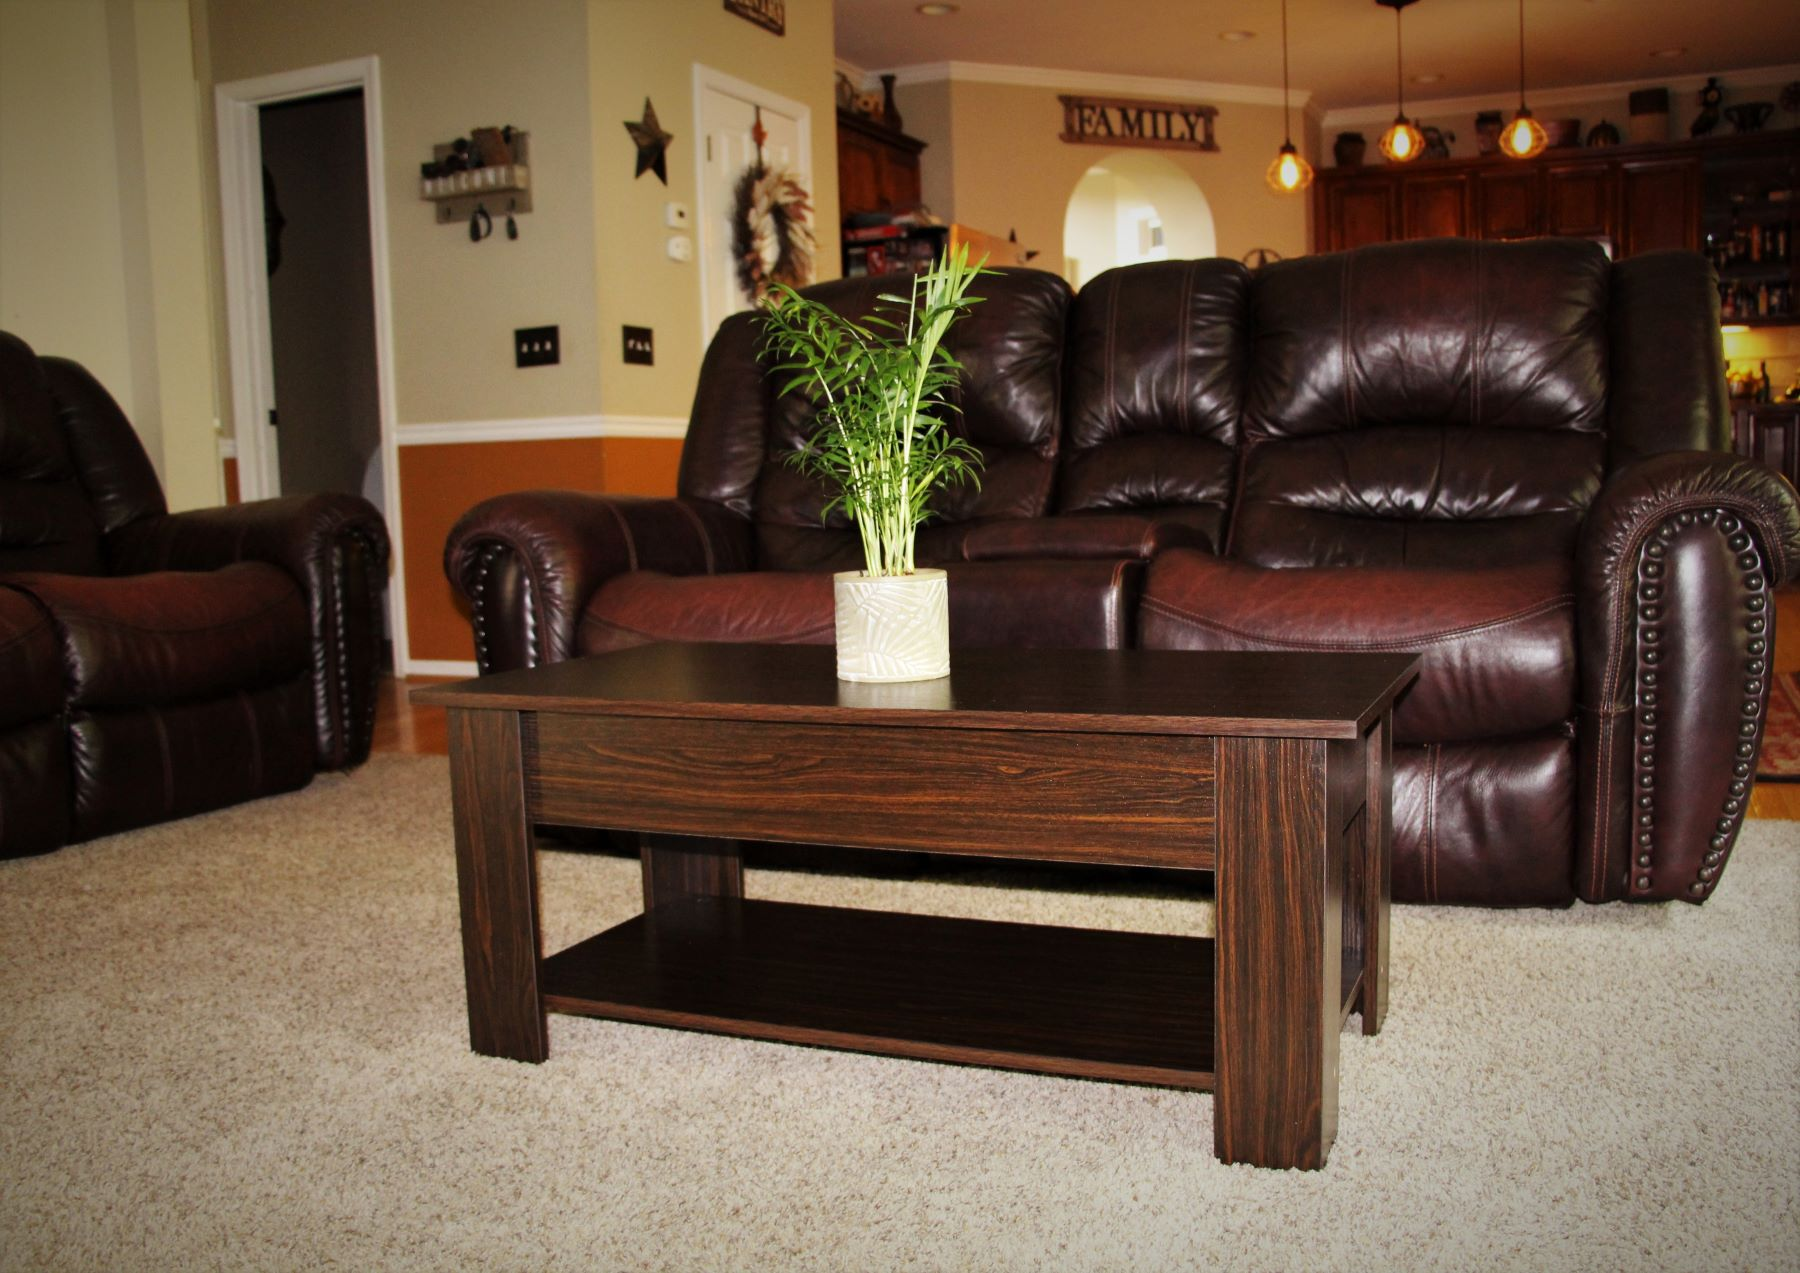 A Review of the Yaheetech Lift Top Coffee Table